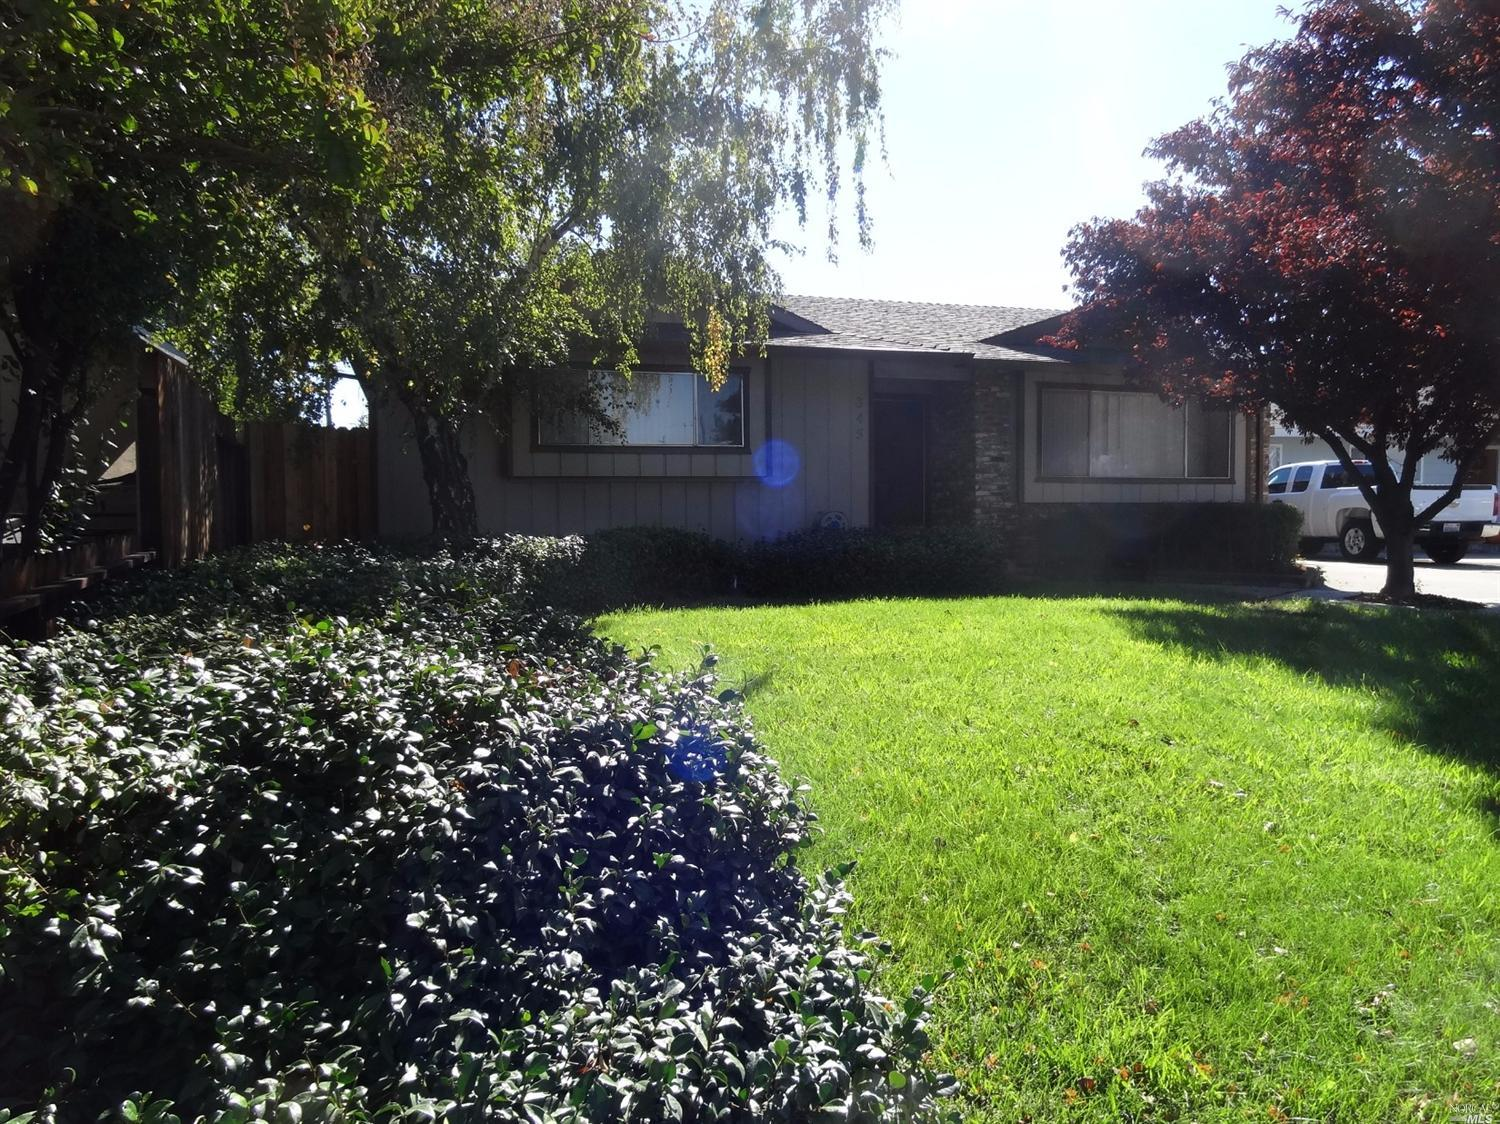 345 South 8th Street, Dixon, California 95620